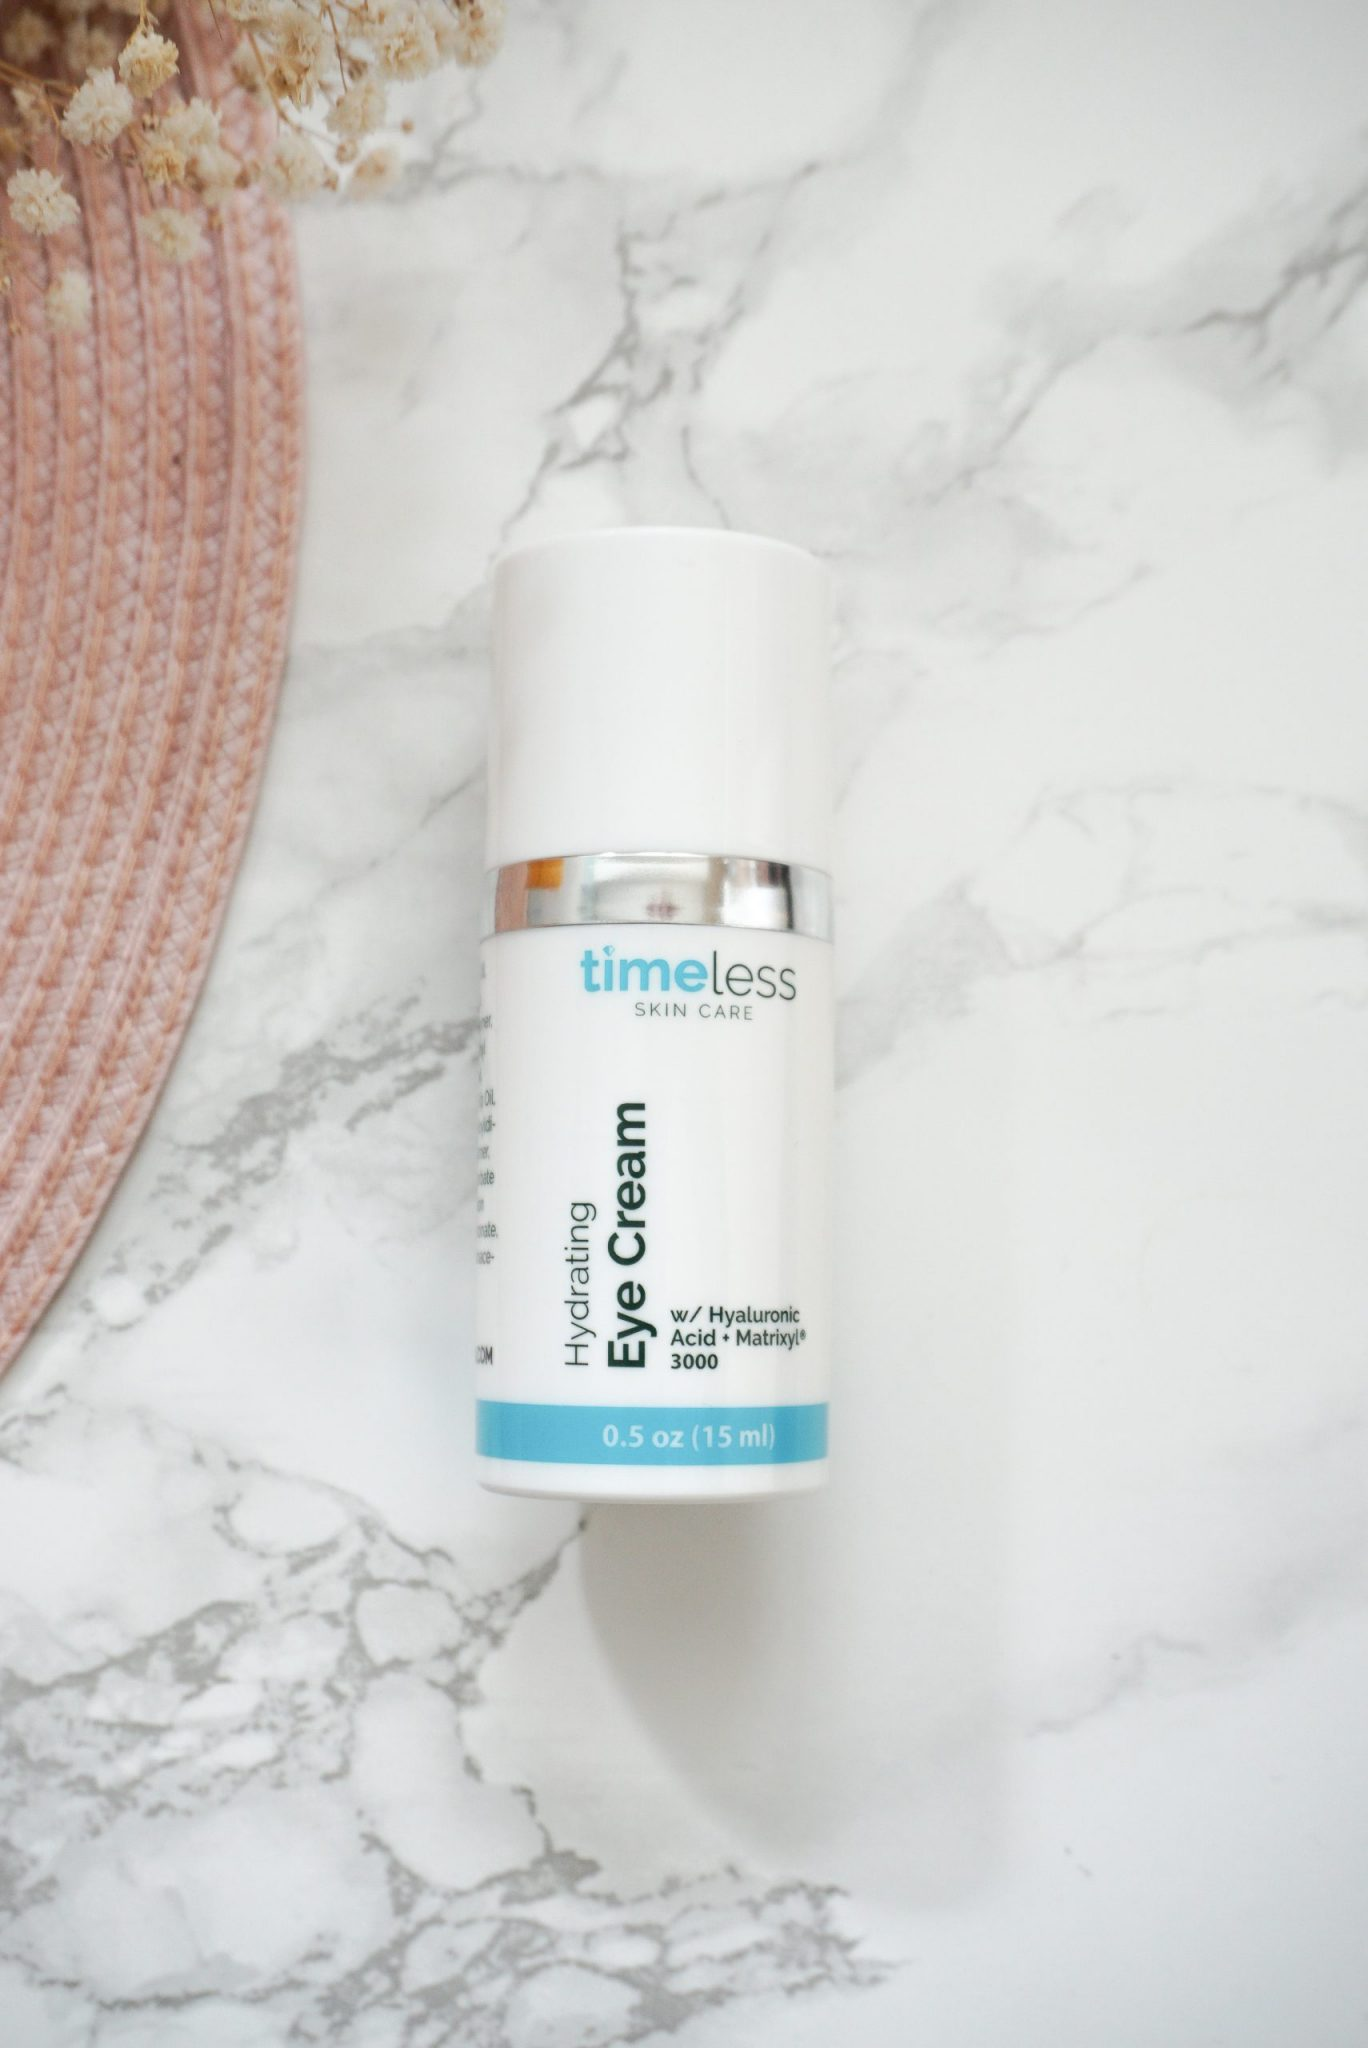 First Time Ever Trying Timeless Skincare Products ⋆ Beautymone